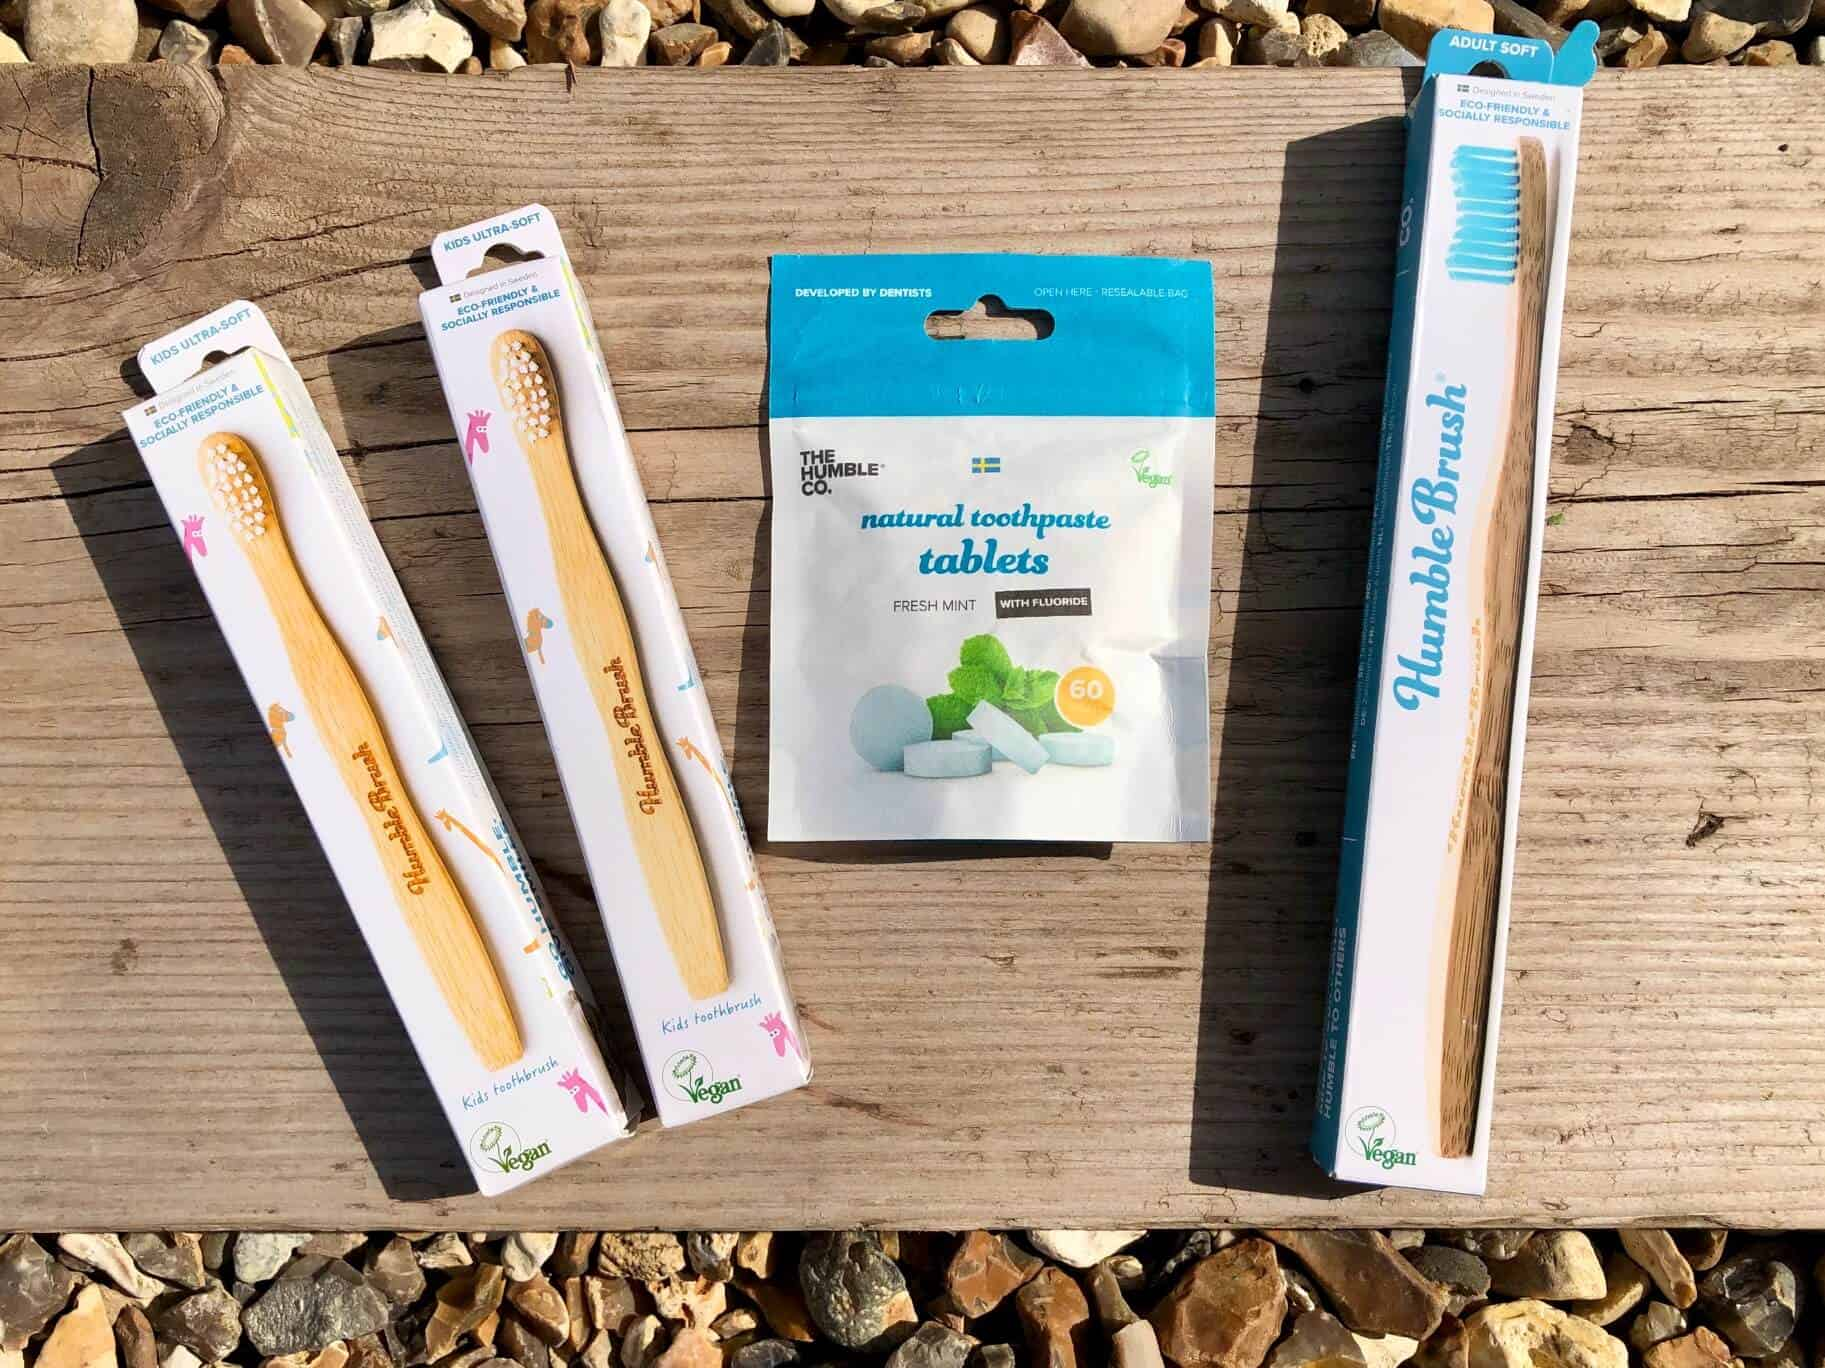 The Best Eco-Friendly Biodegradable Bamboo Toothbrush - The Humble Brush